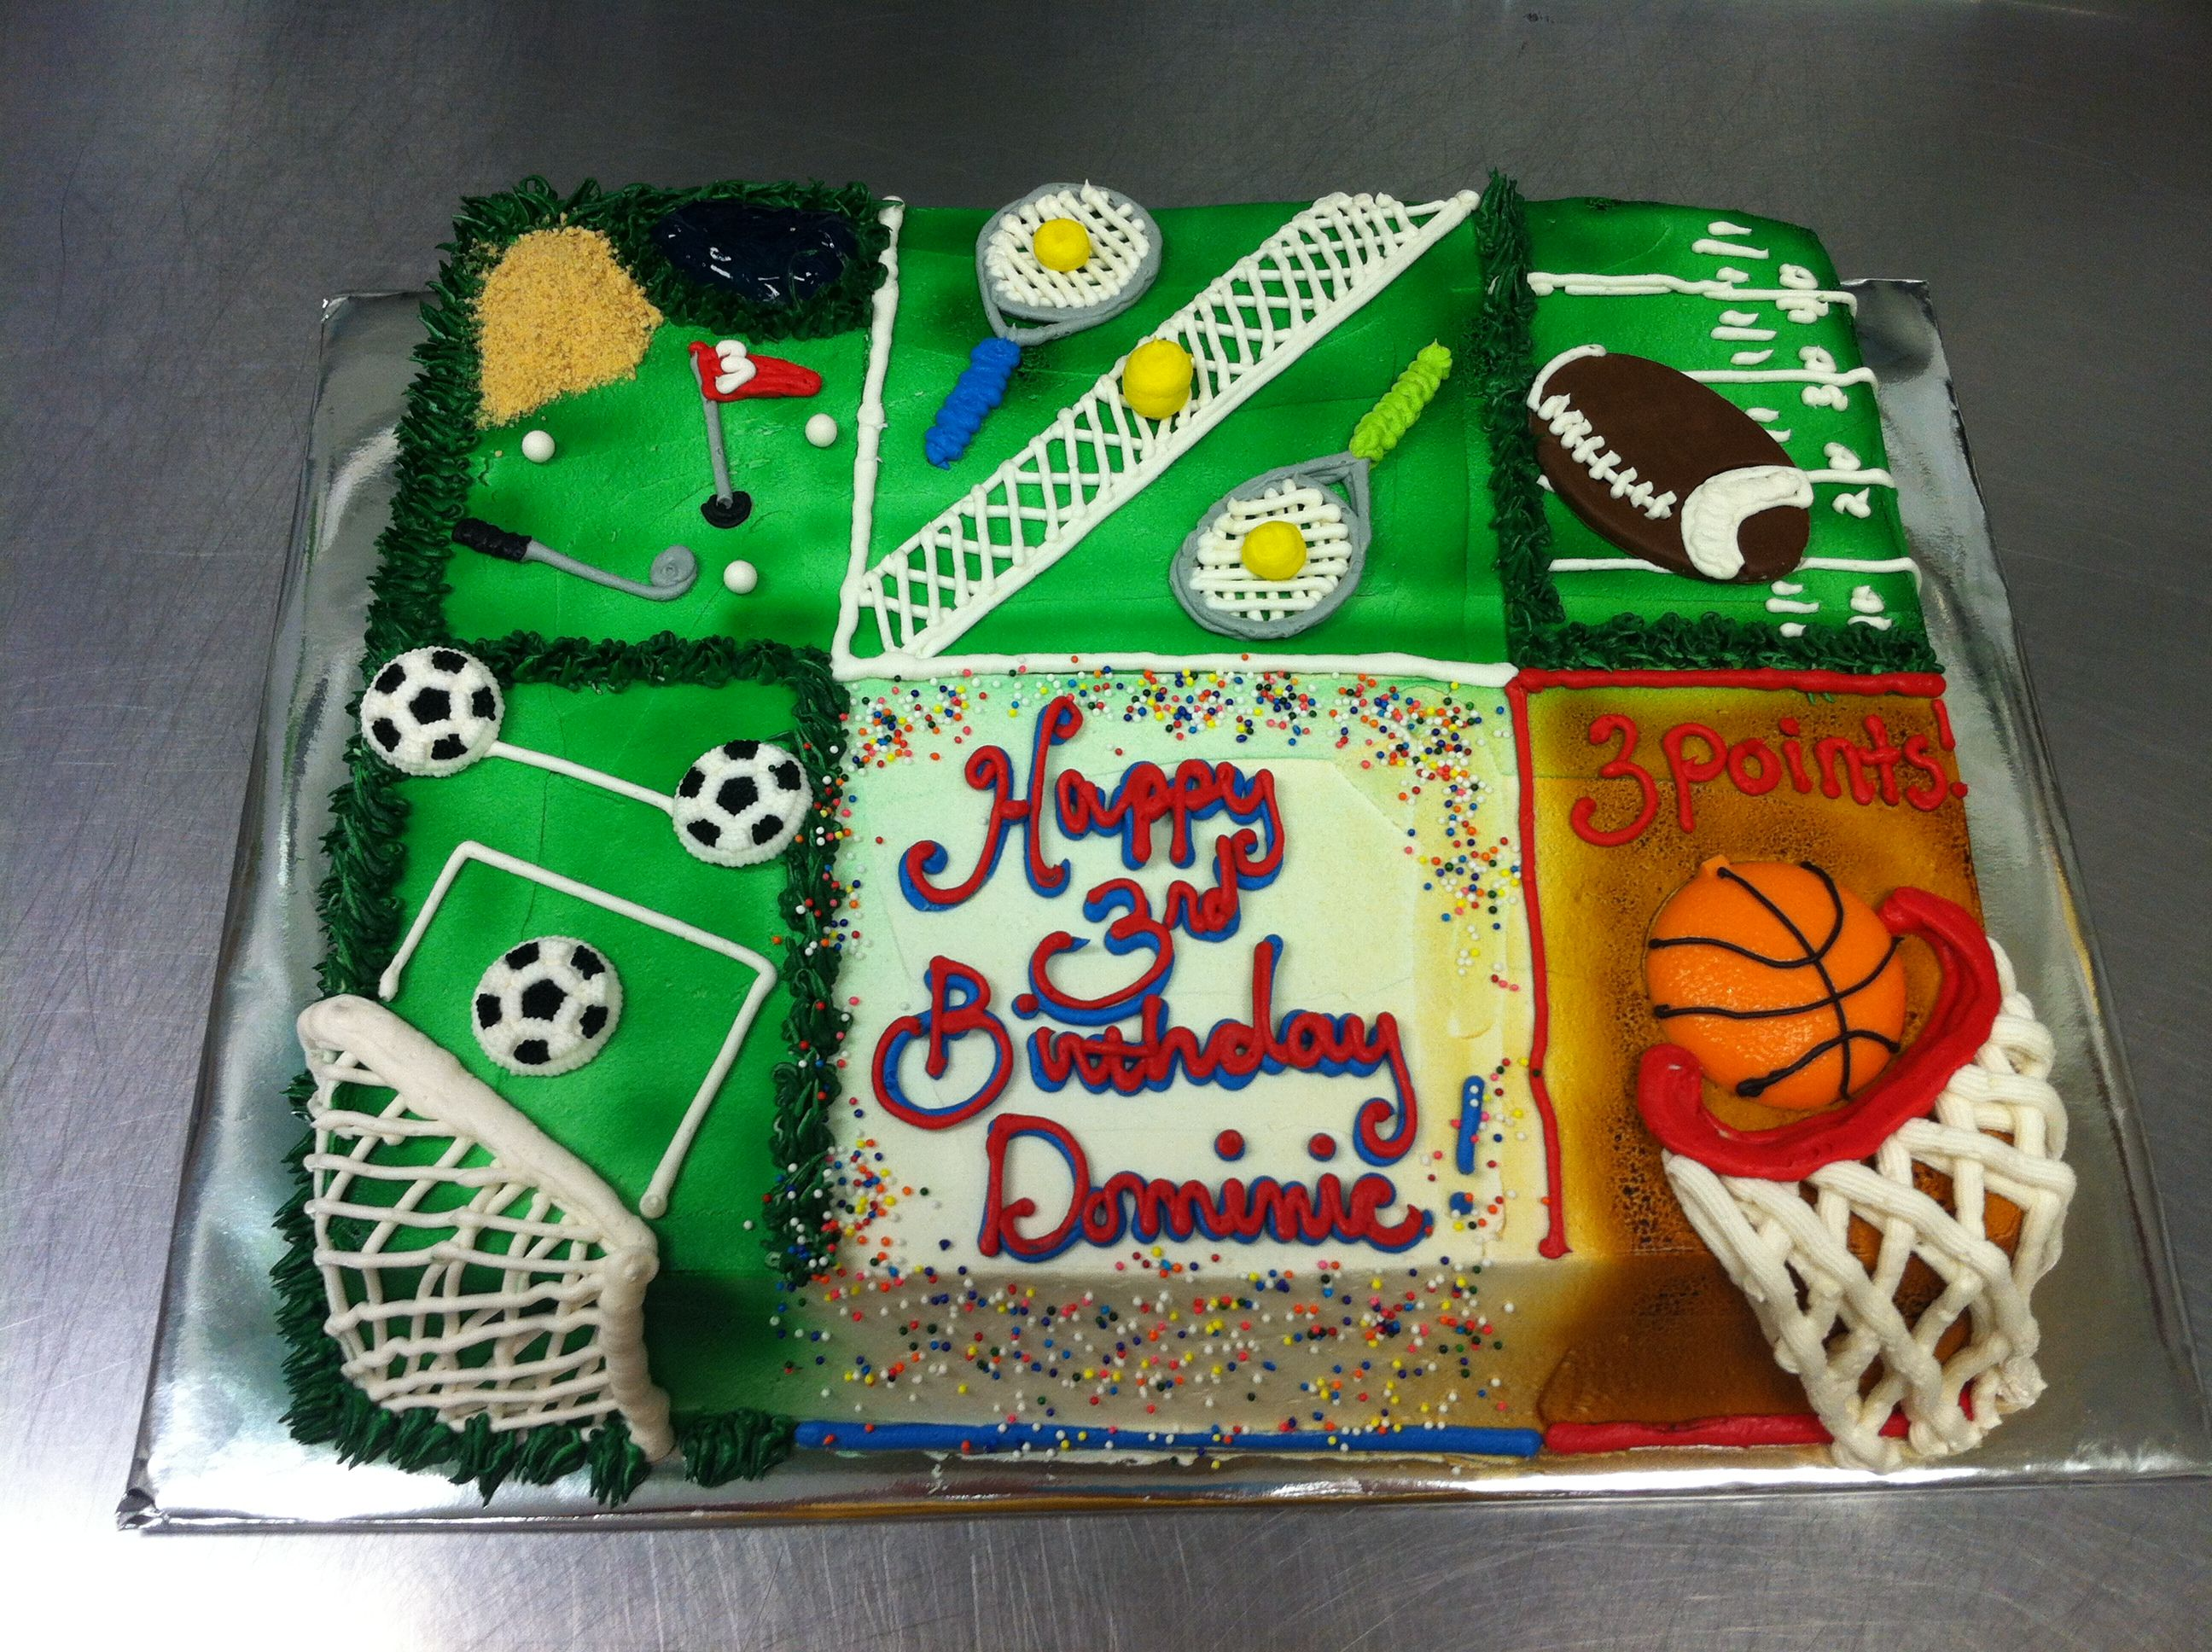 All Star St Birthday Cake In Sports Theme Karens Cakes KW At - All star birthday cake